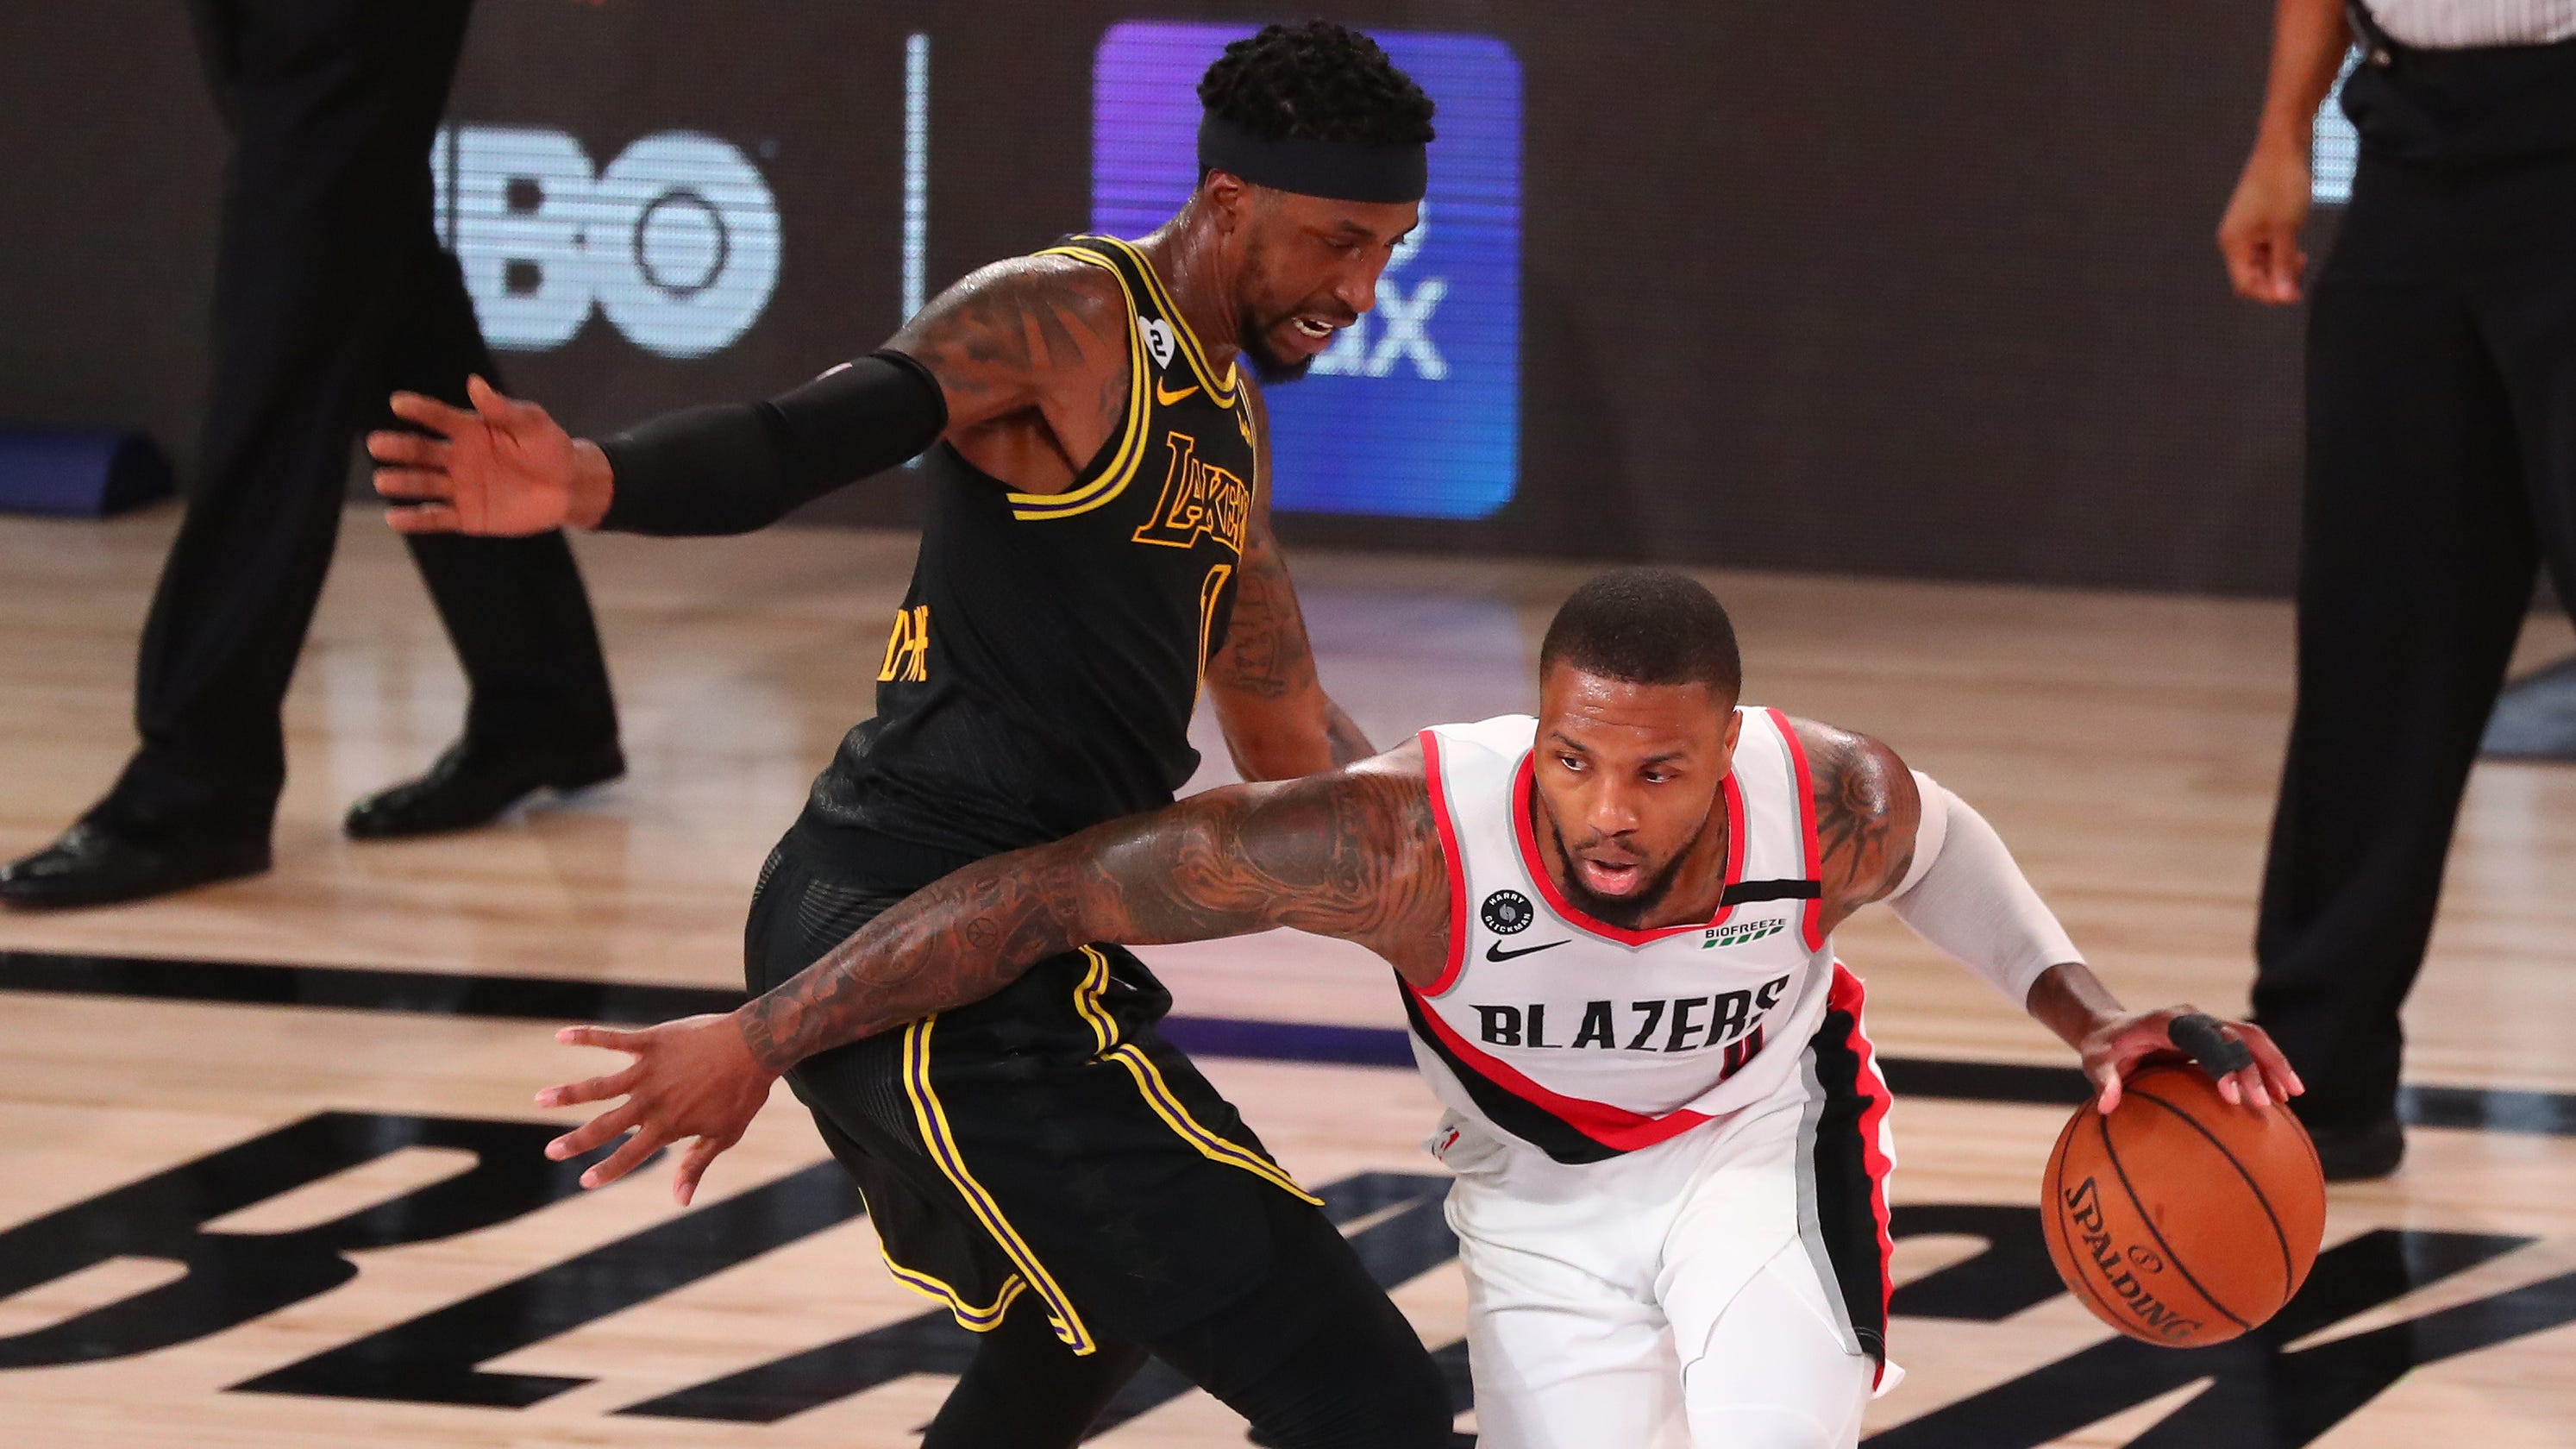 Blazers' Damian Lillard shows no mercy toward Patrick Beverley, Clippers after Game 7 loss